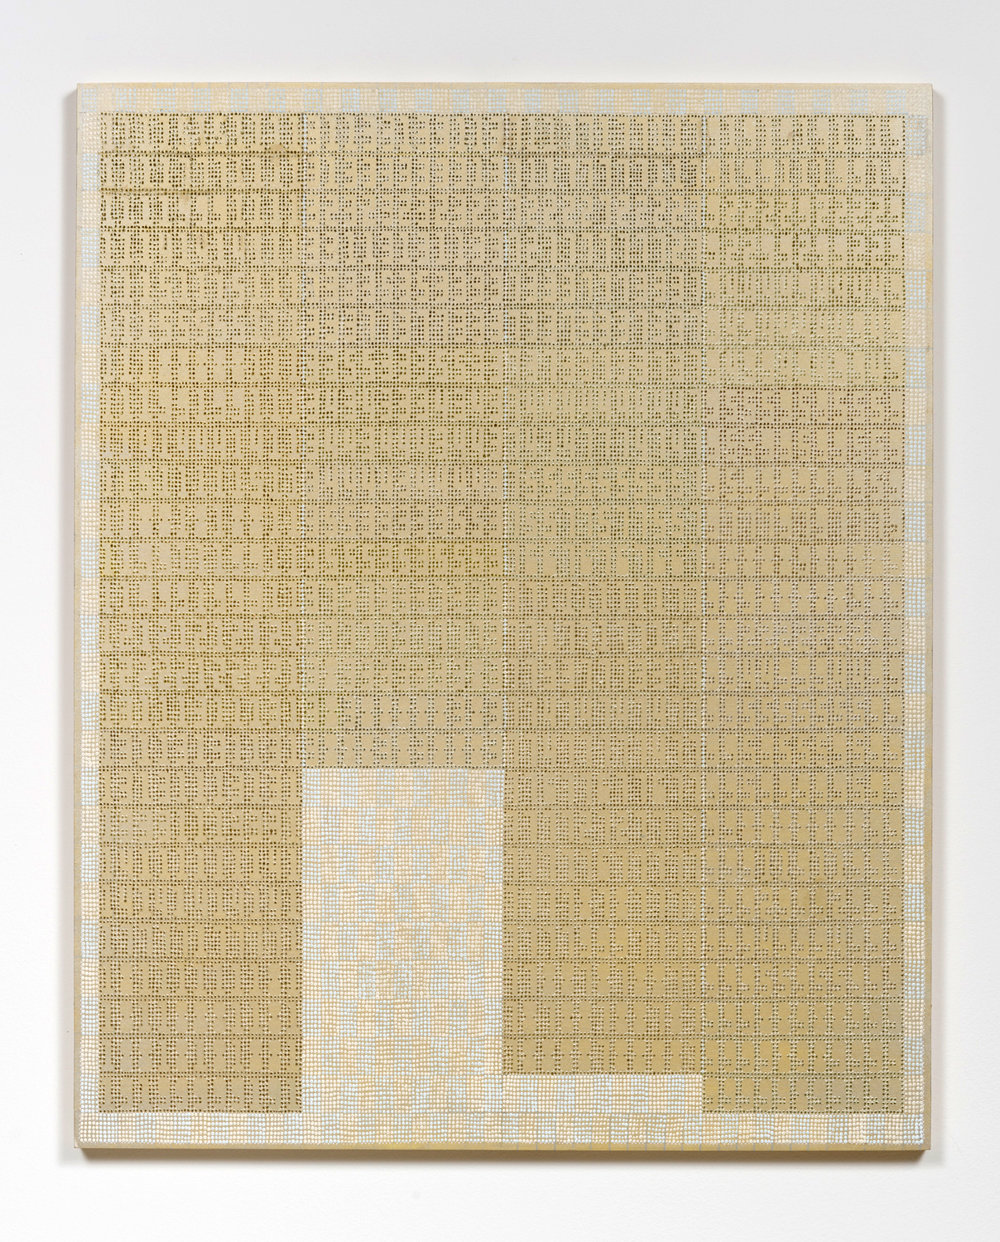 XYLOR JANE  Zahav (Ninety-four 11 digit prime palindromes arranged in four columns, selected from a group of 42,100),  2017 oil and ink on board 30 x 24 inches